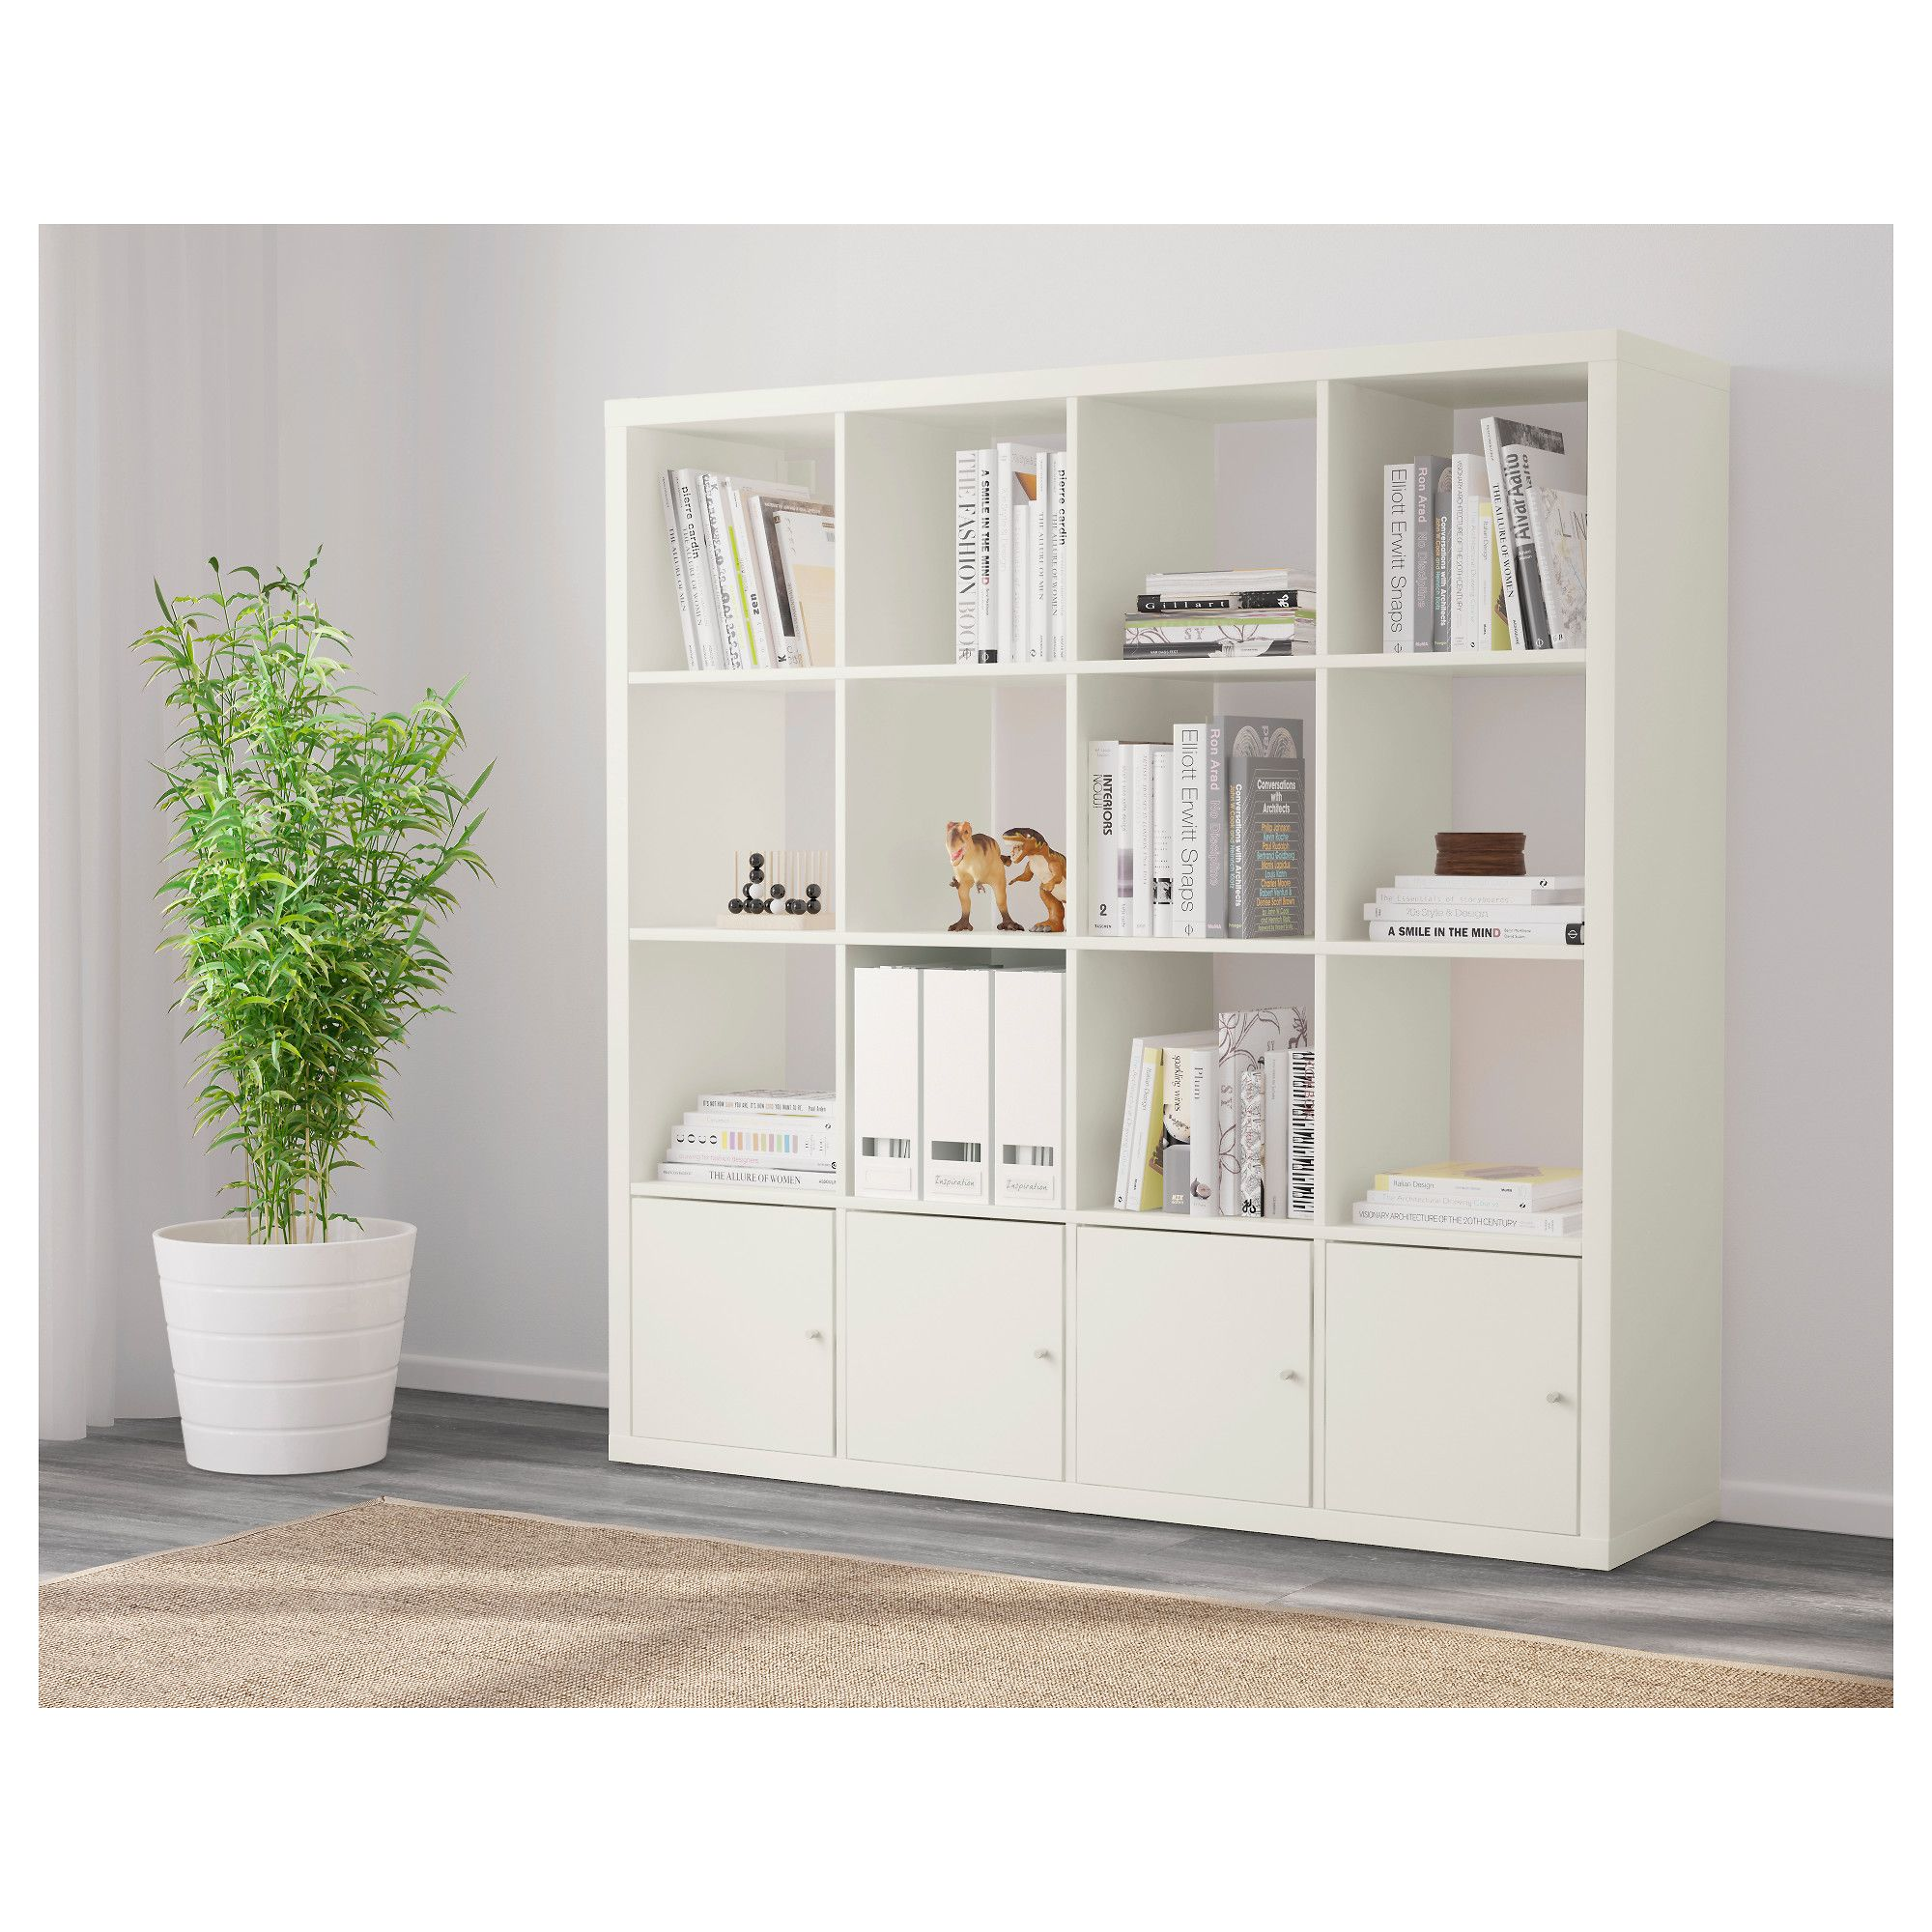 Ikea Regale Kallax kallax shelving unit with 4 inserts white 147x147 cm kallax